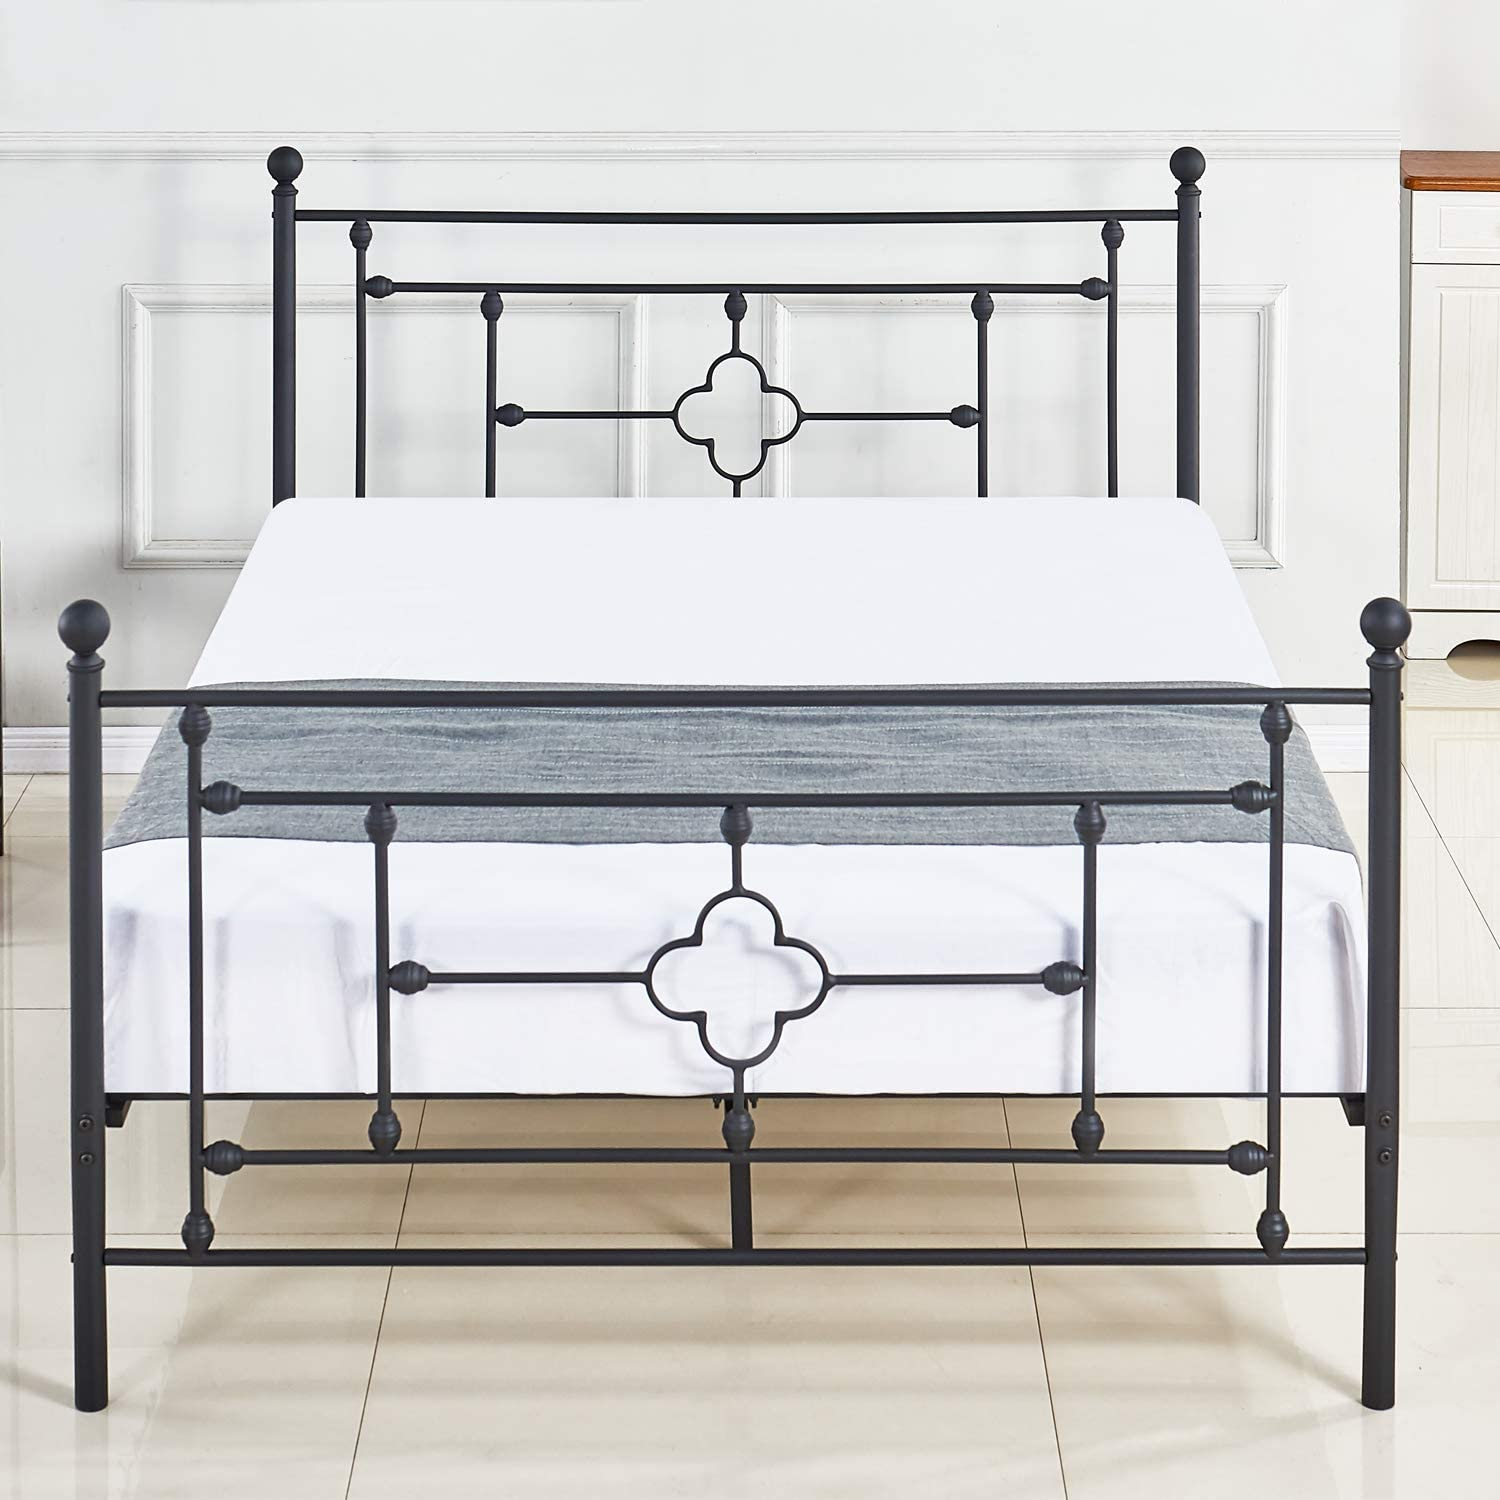 DIKAPA Metal Bed Platform Full Size Frame with Headboard No Boxspring Needed Mattress Foundation Box Spring Replacement Premium Heavy Steel Tube Support